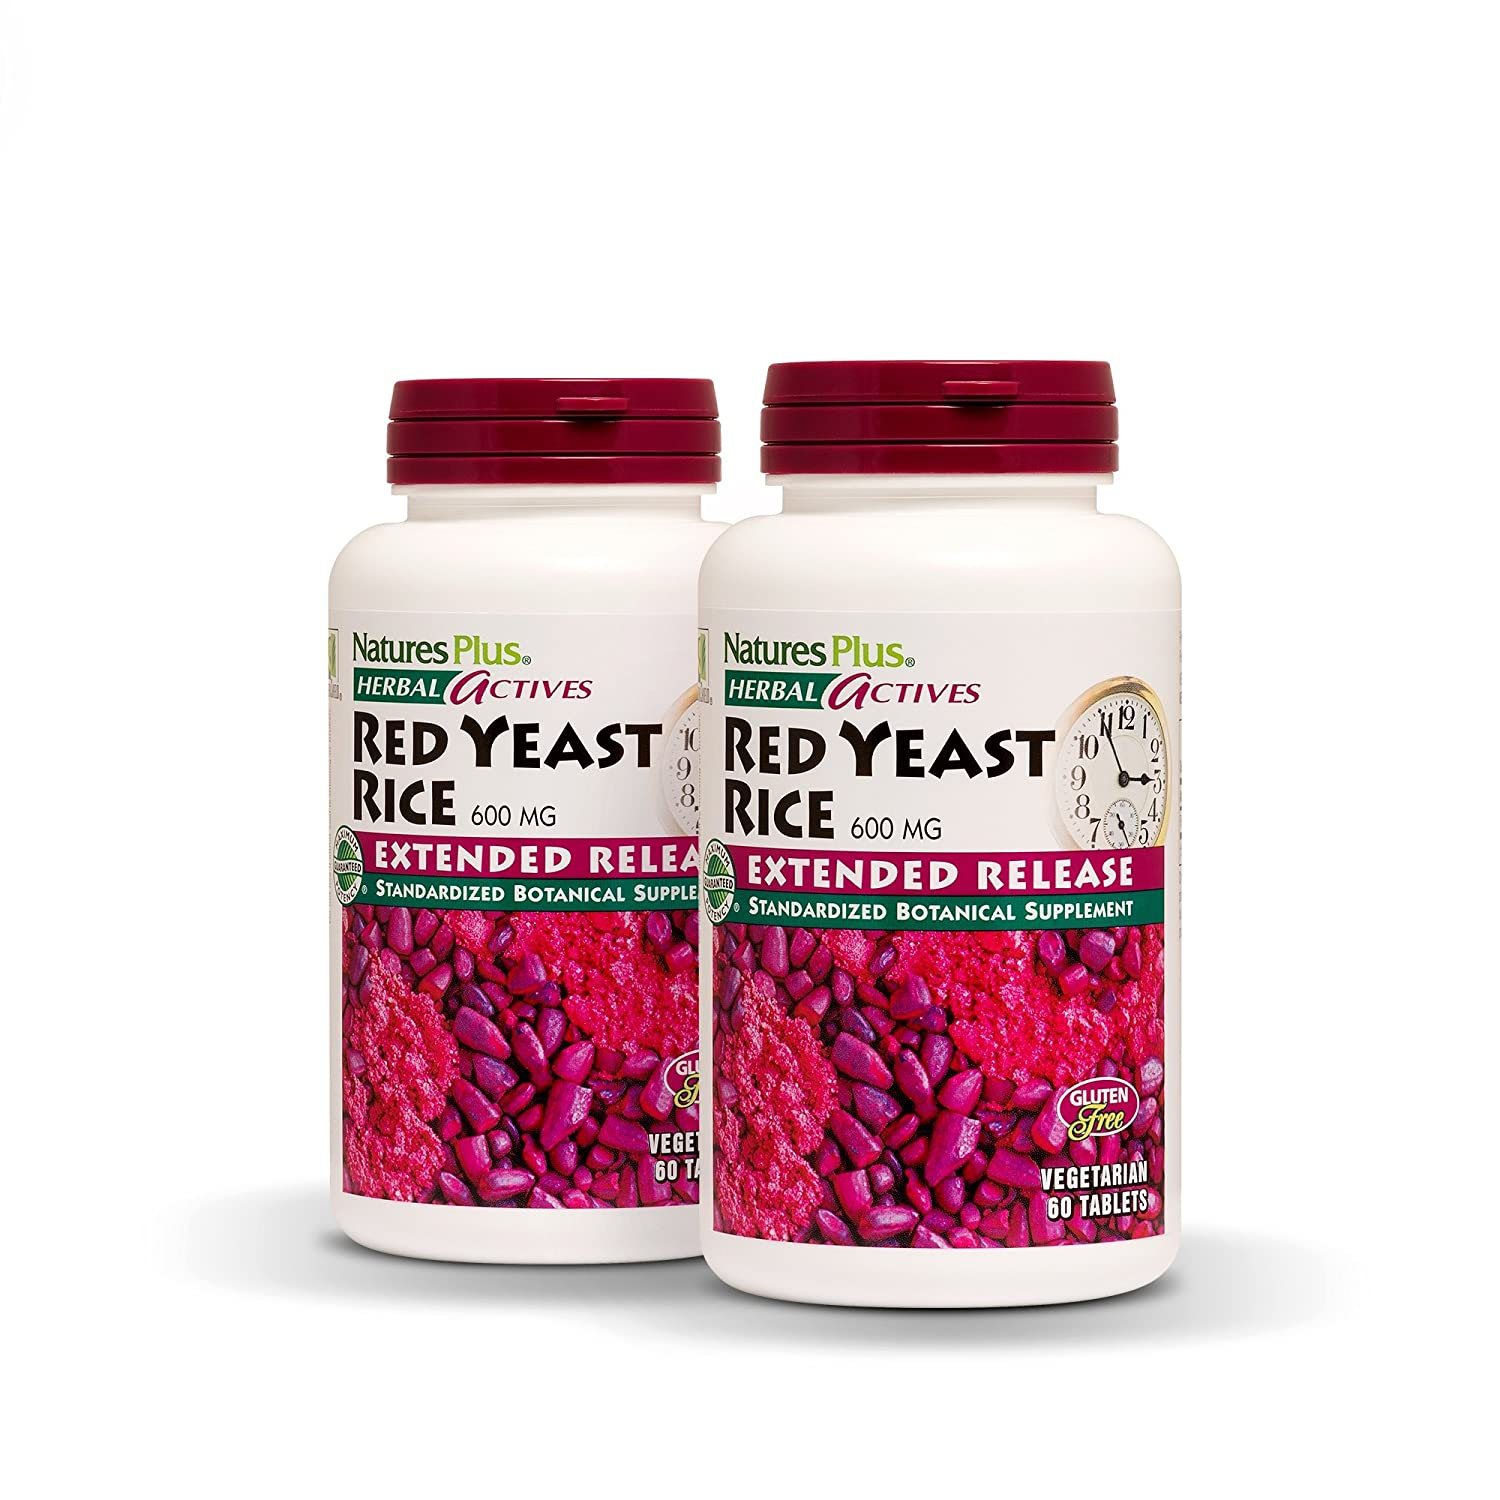 NaturesPlus Herbal Actives Red Yeast Rice, Extended Release 2 Pack – 600mg, 60 Vegan Tablets – Herbal Supplement, Cholesterol Support – Vegetarian, Gluten-Free – 30 Servings